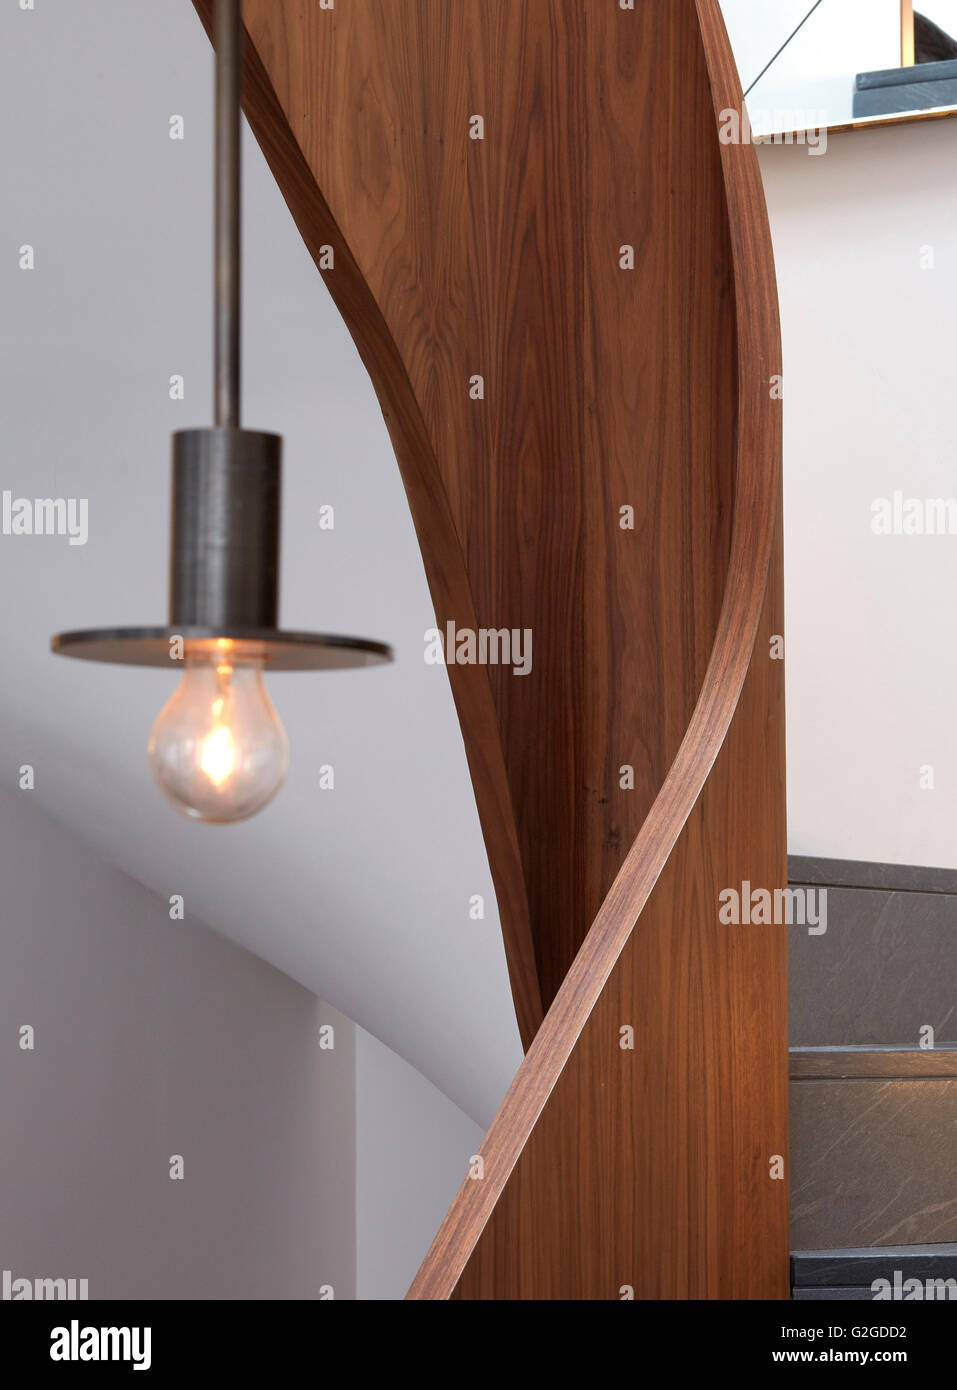 Cranley Stock Photos Images Alamy Deakins Lighting Diagram Detail Of Central Staircase Private Residence London United Kingdom Architect